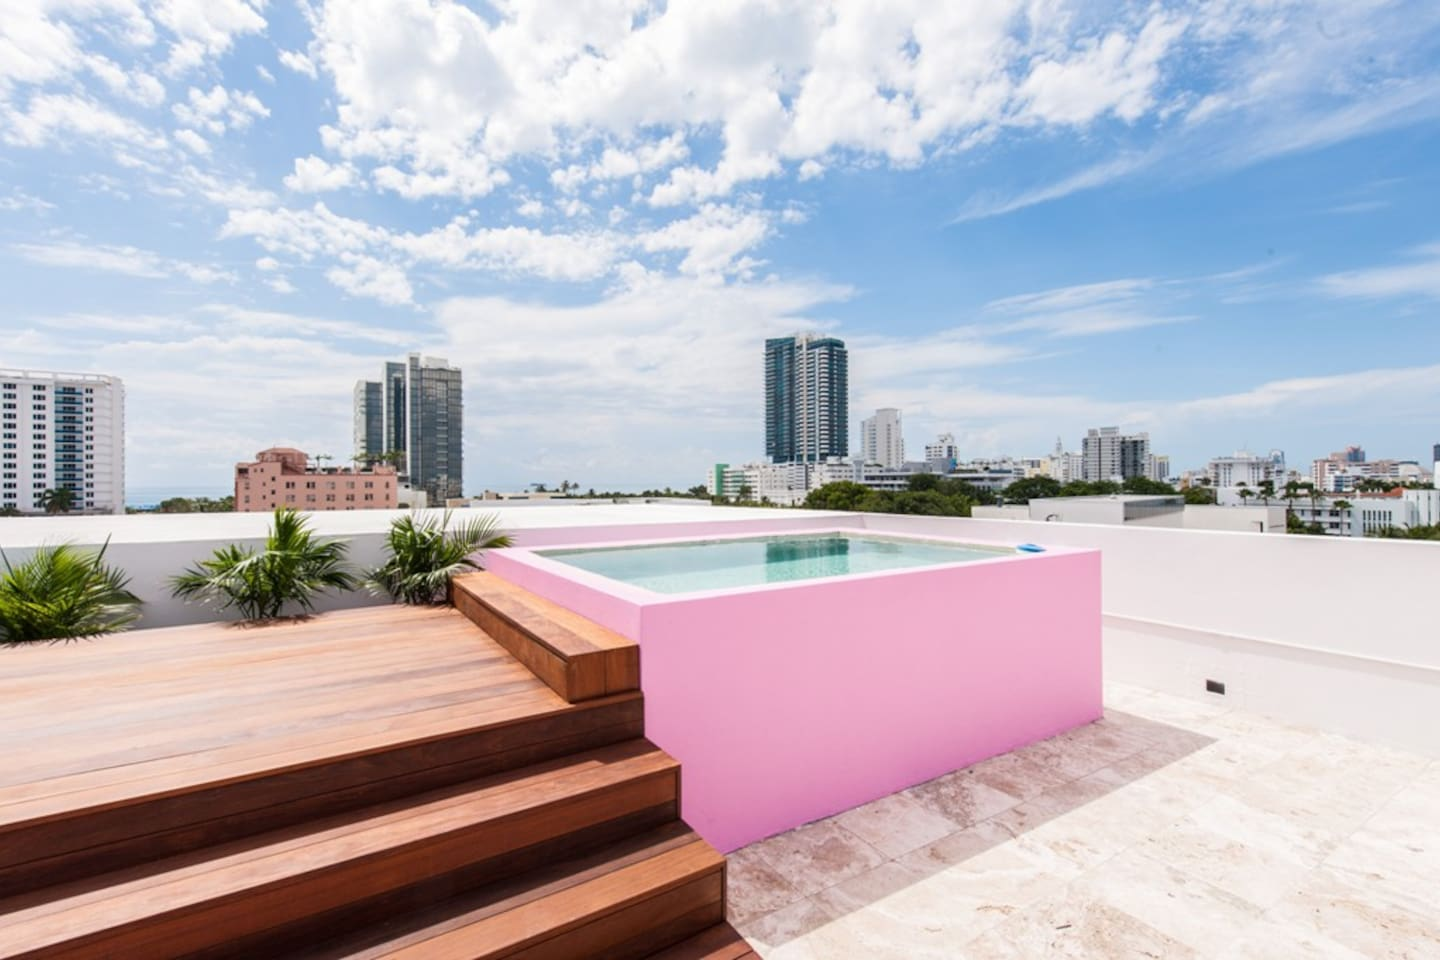 4 STORY TOWNHOME SOUTH BEACH 5BED